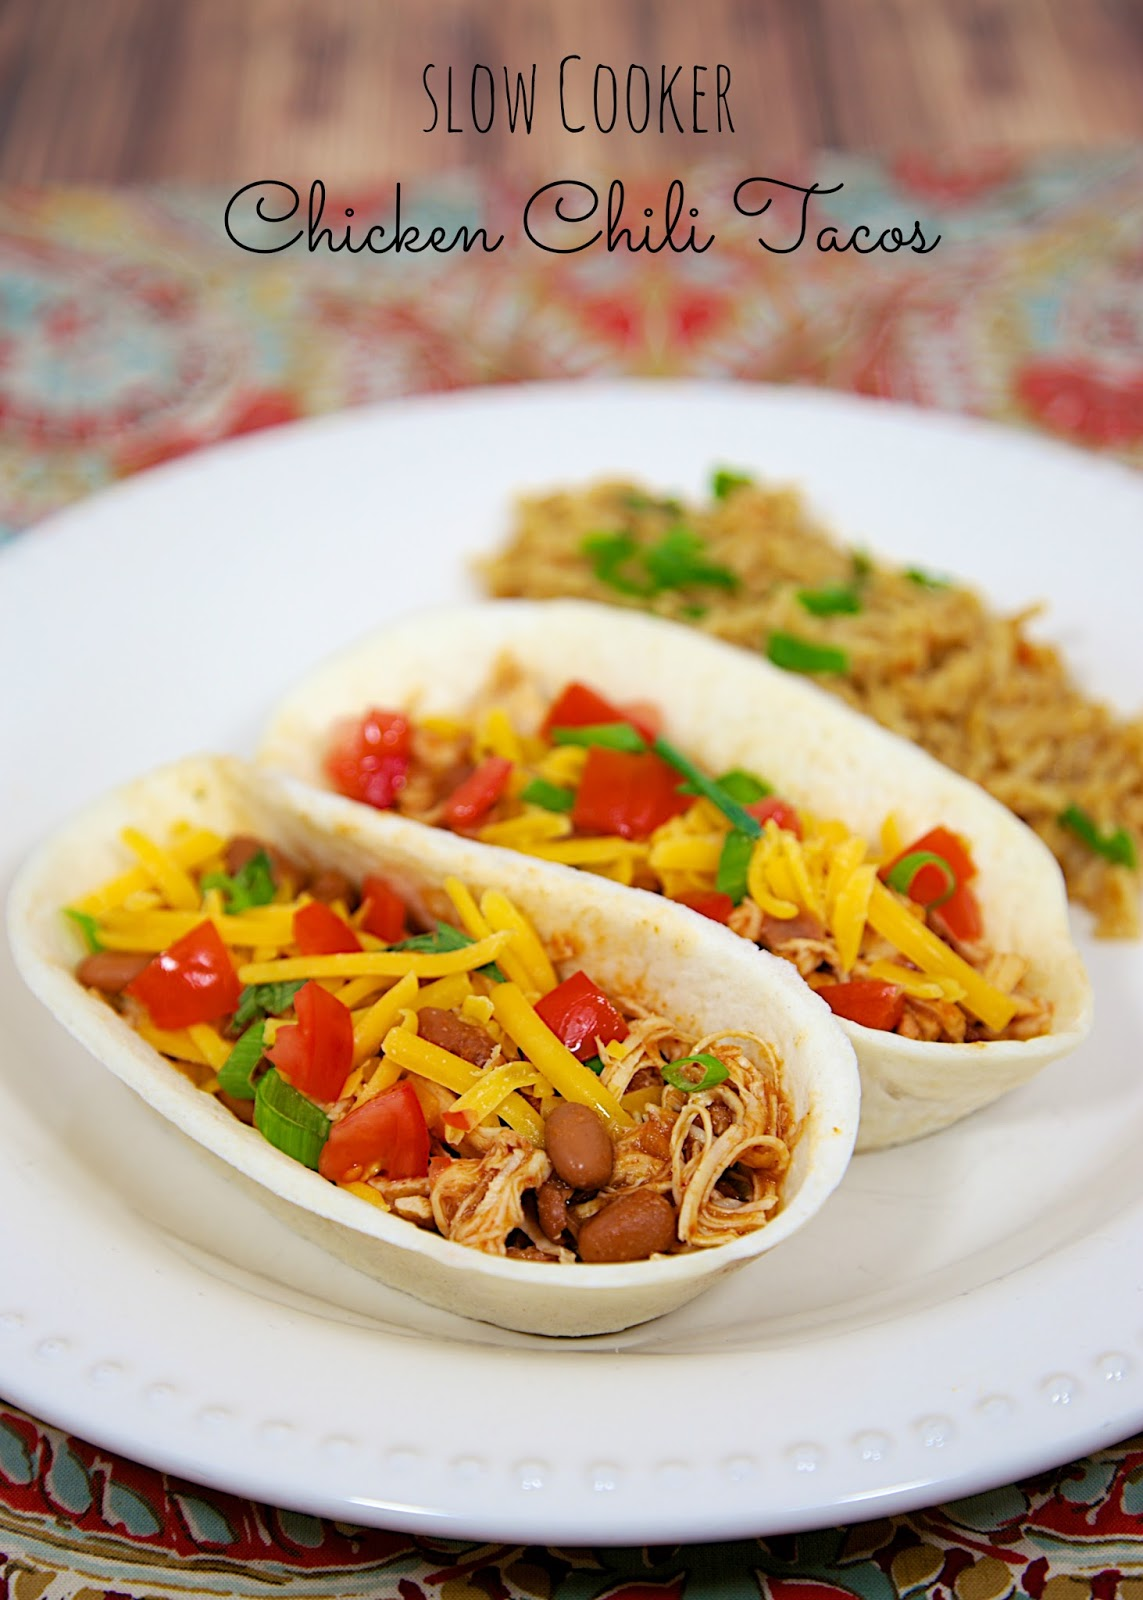 Slow Cooker Chicken Chili Tacos | Plain Chicken